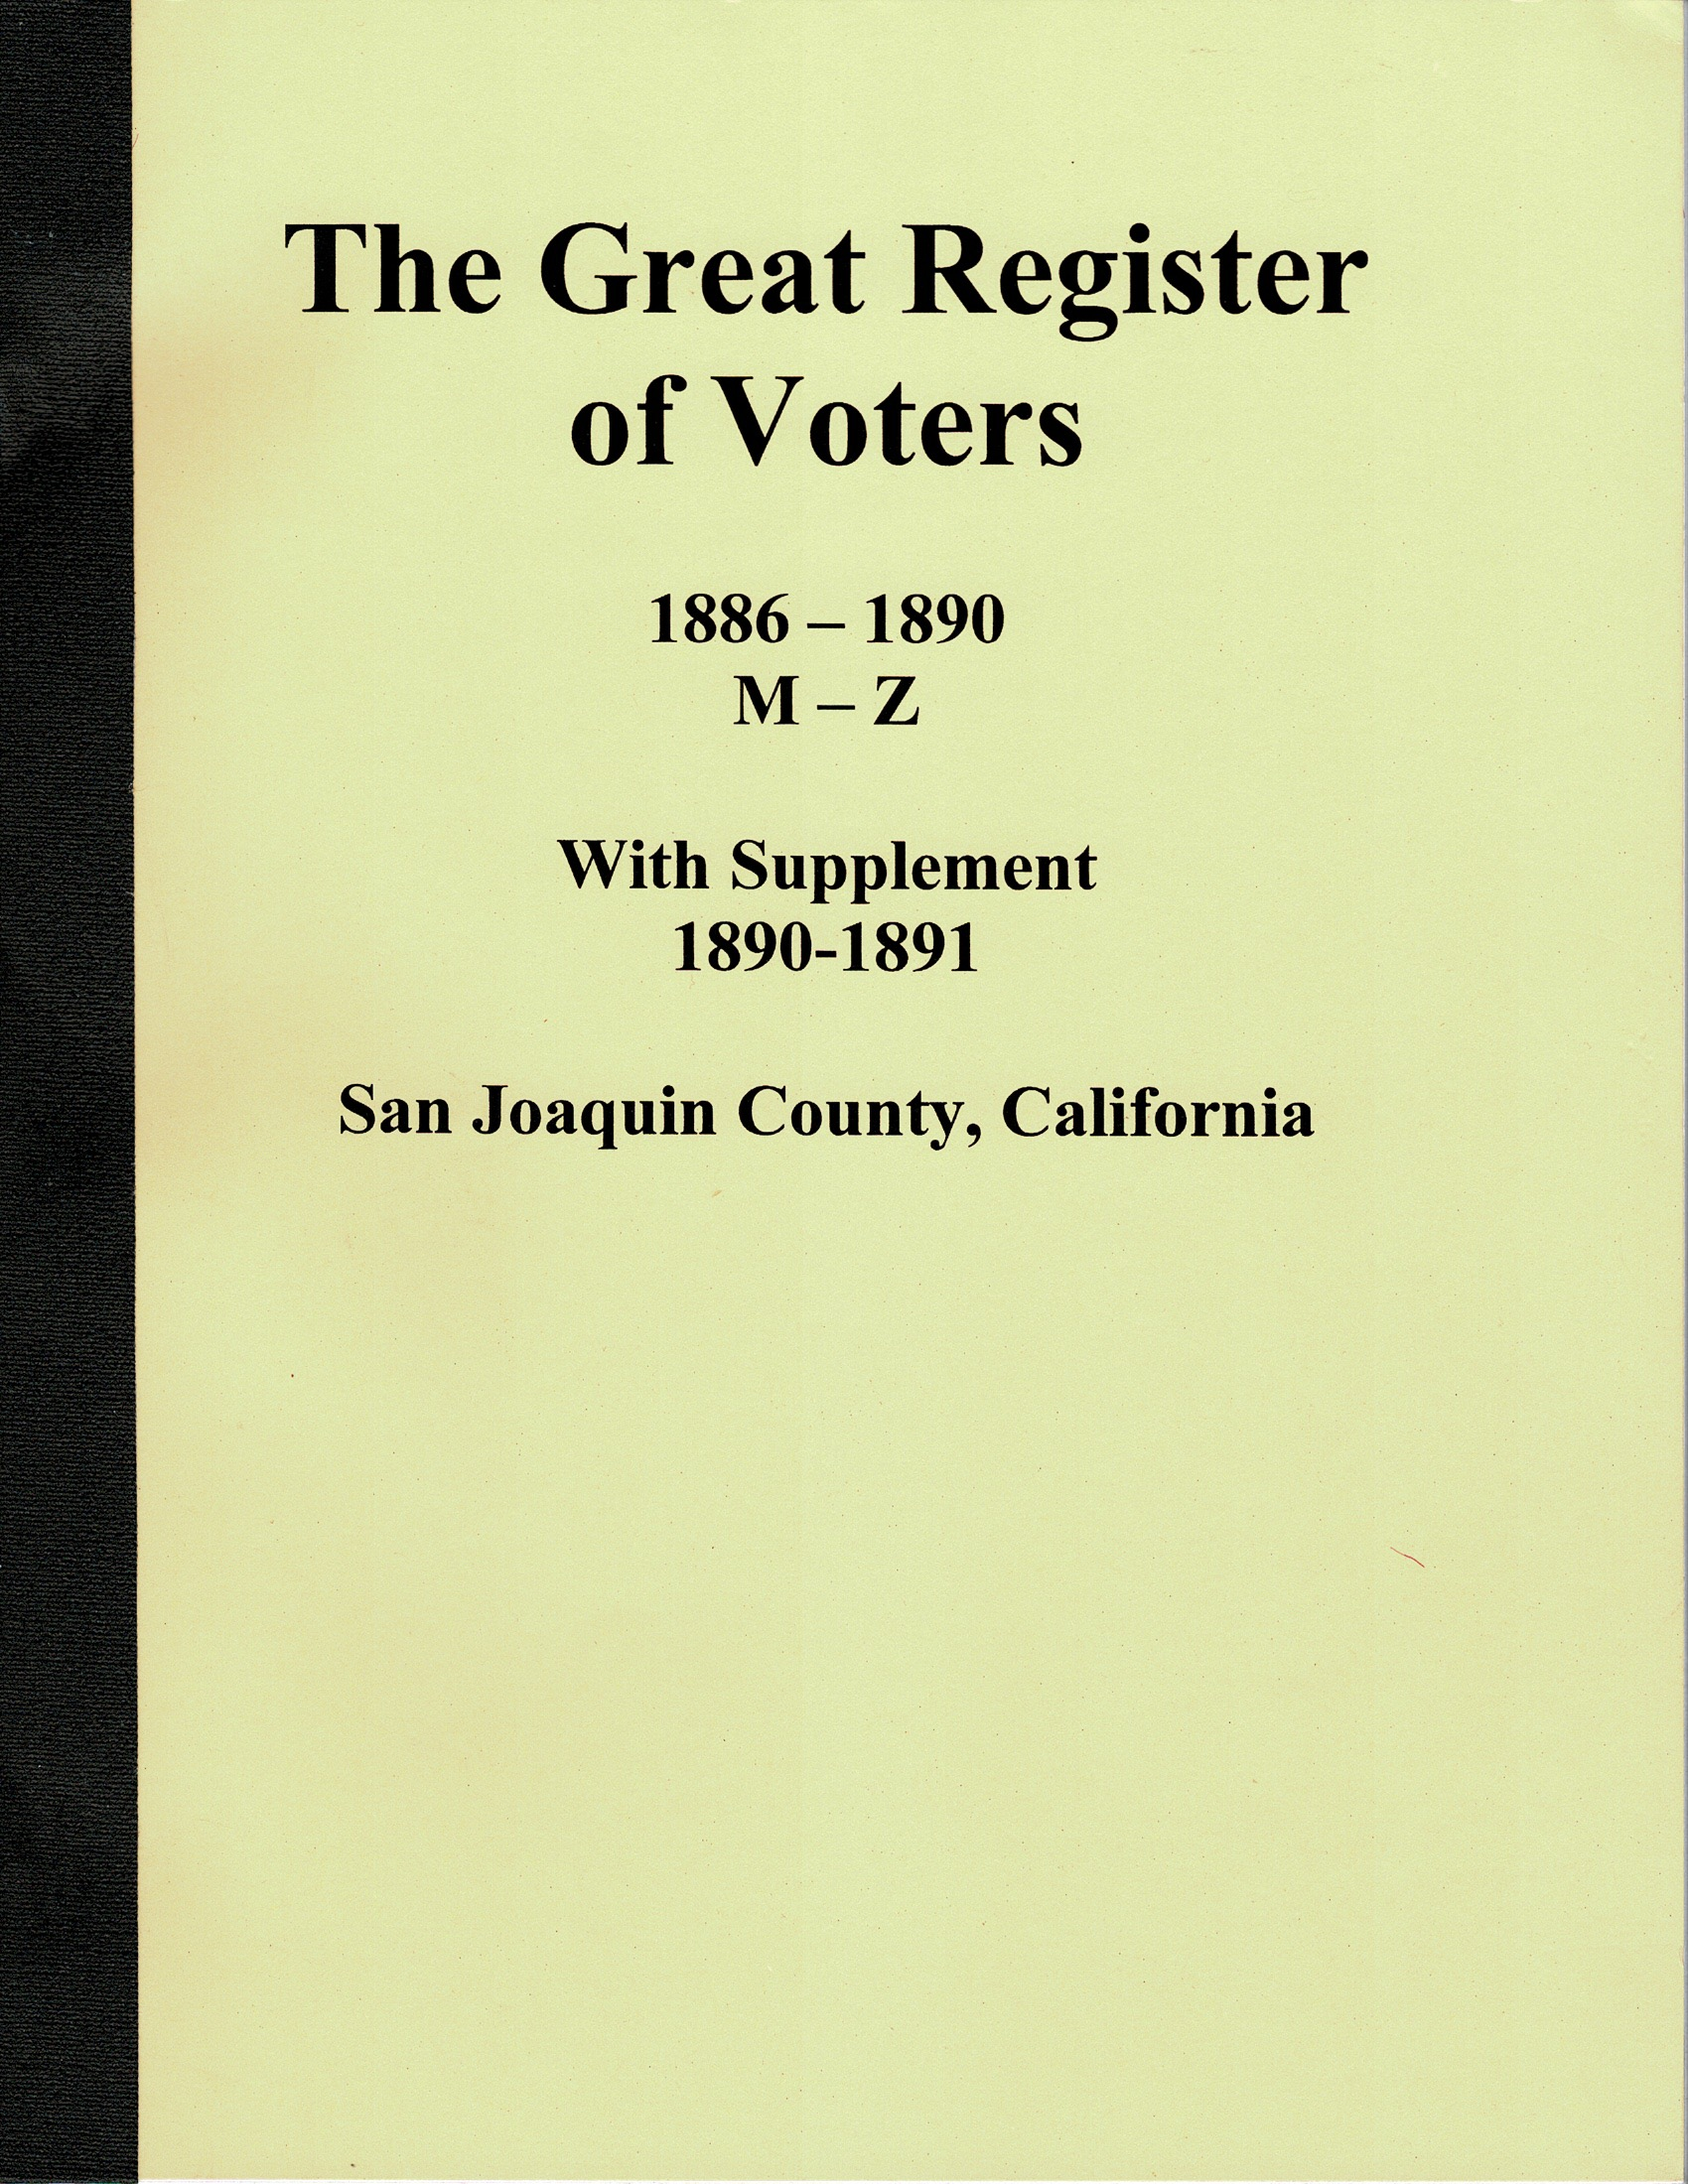 The Great Register of Voters, 1886 – 1890, M – Z, San Joaquin County, California